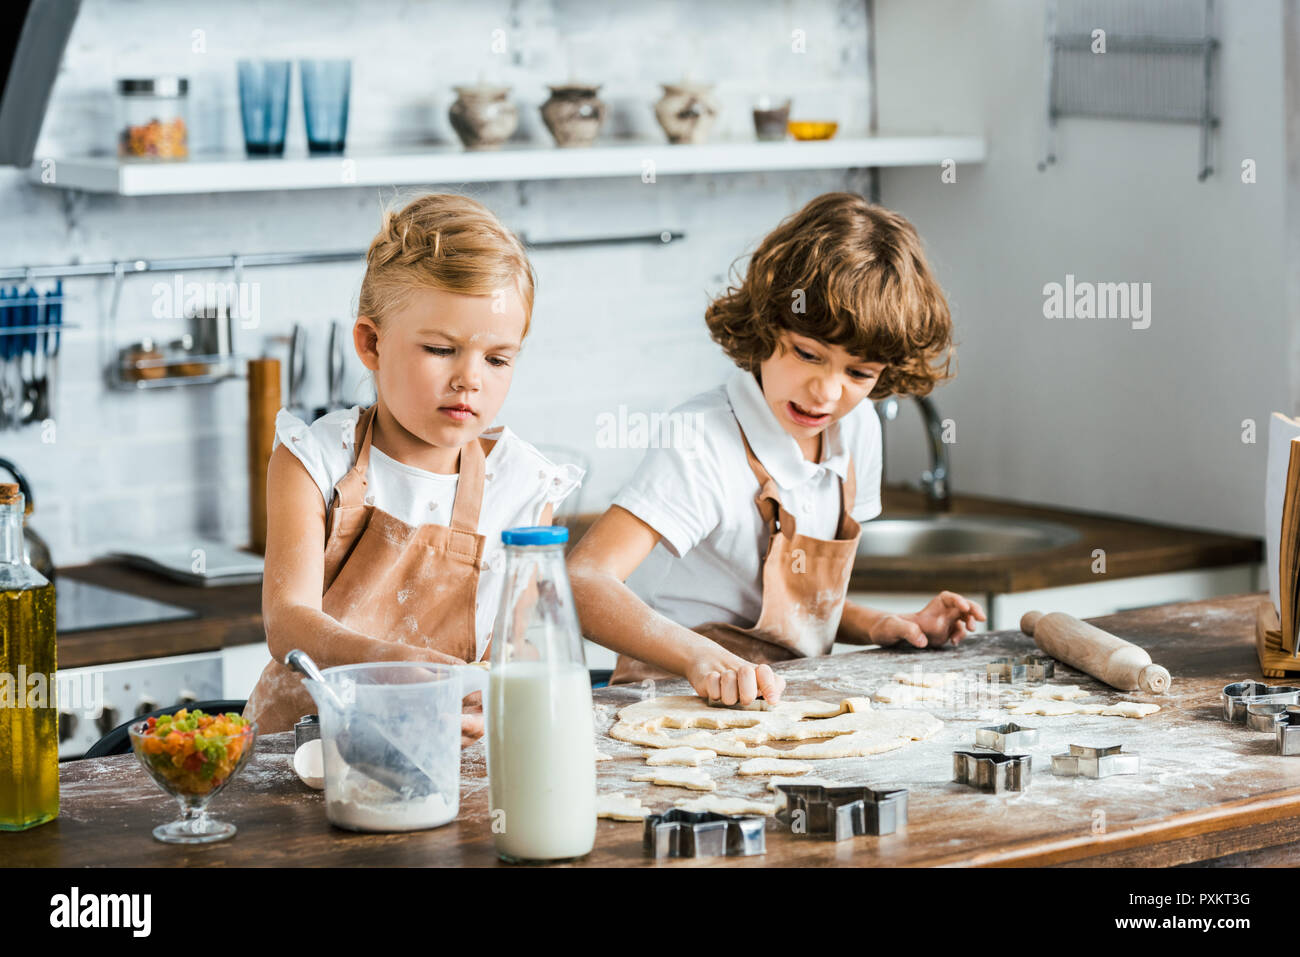 adorable children in aprons preparing dough for tasty cookies - Stock Image